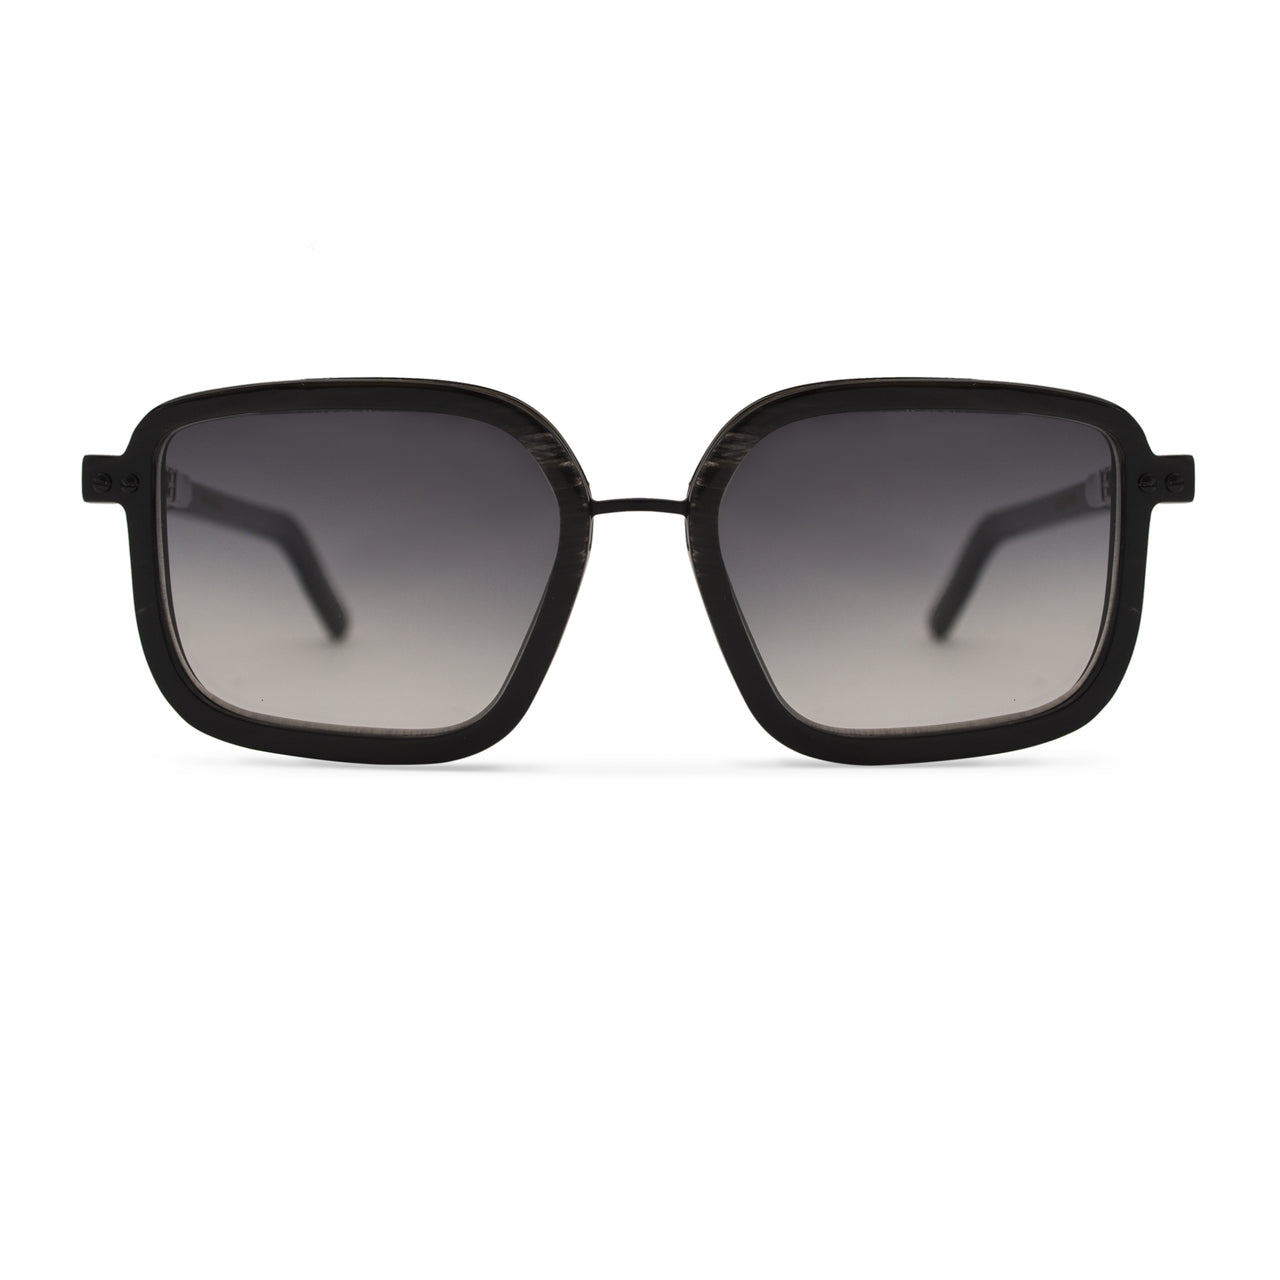 Horn. Dark. Smoke Lens. - BLYSZAK eyewear eyewear - eyewear, optical, sunglasses